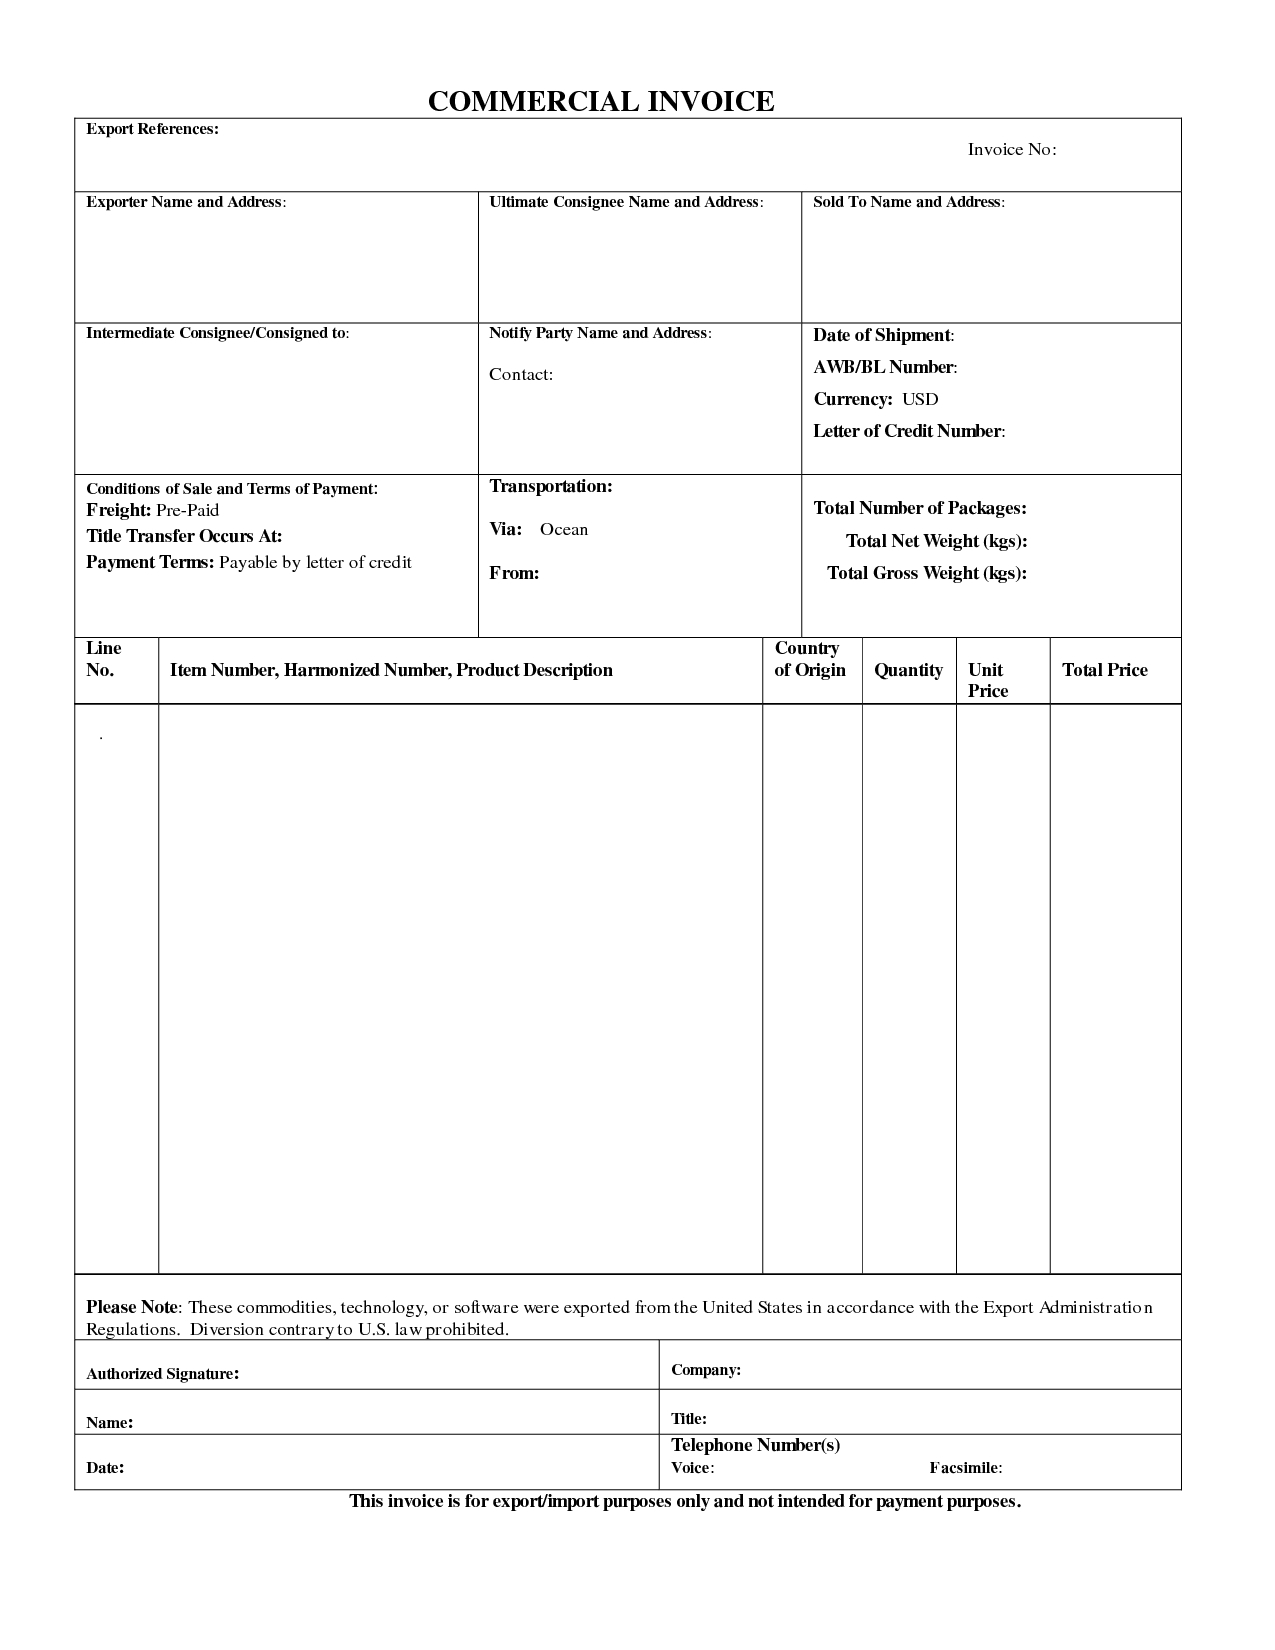 export invoice format in word invoice format for export invoice template free 2016 1275 X 1650